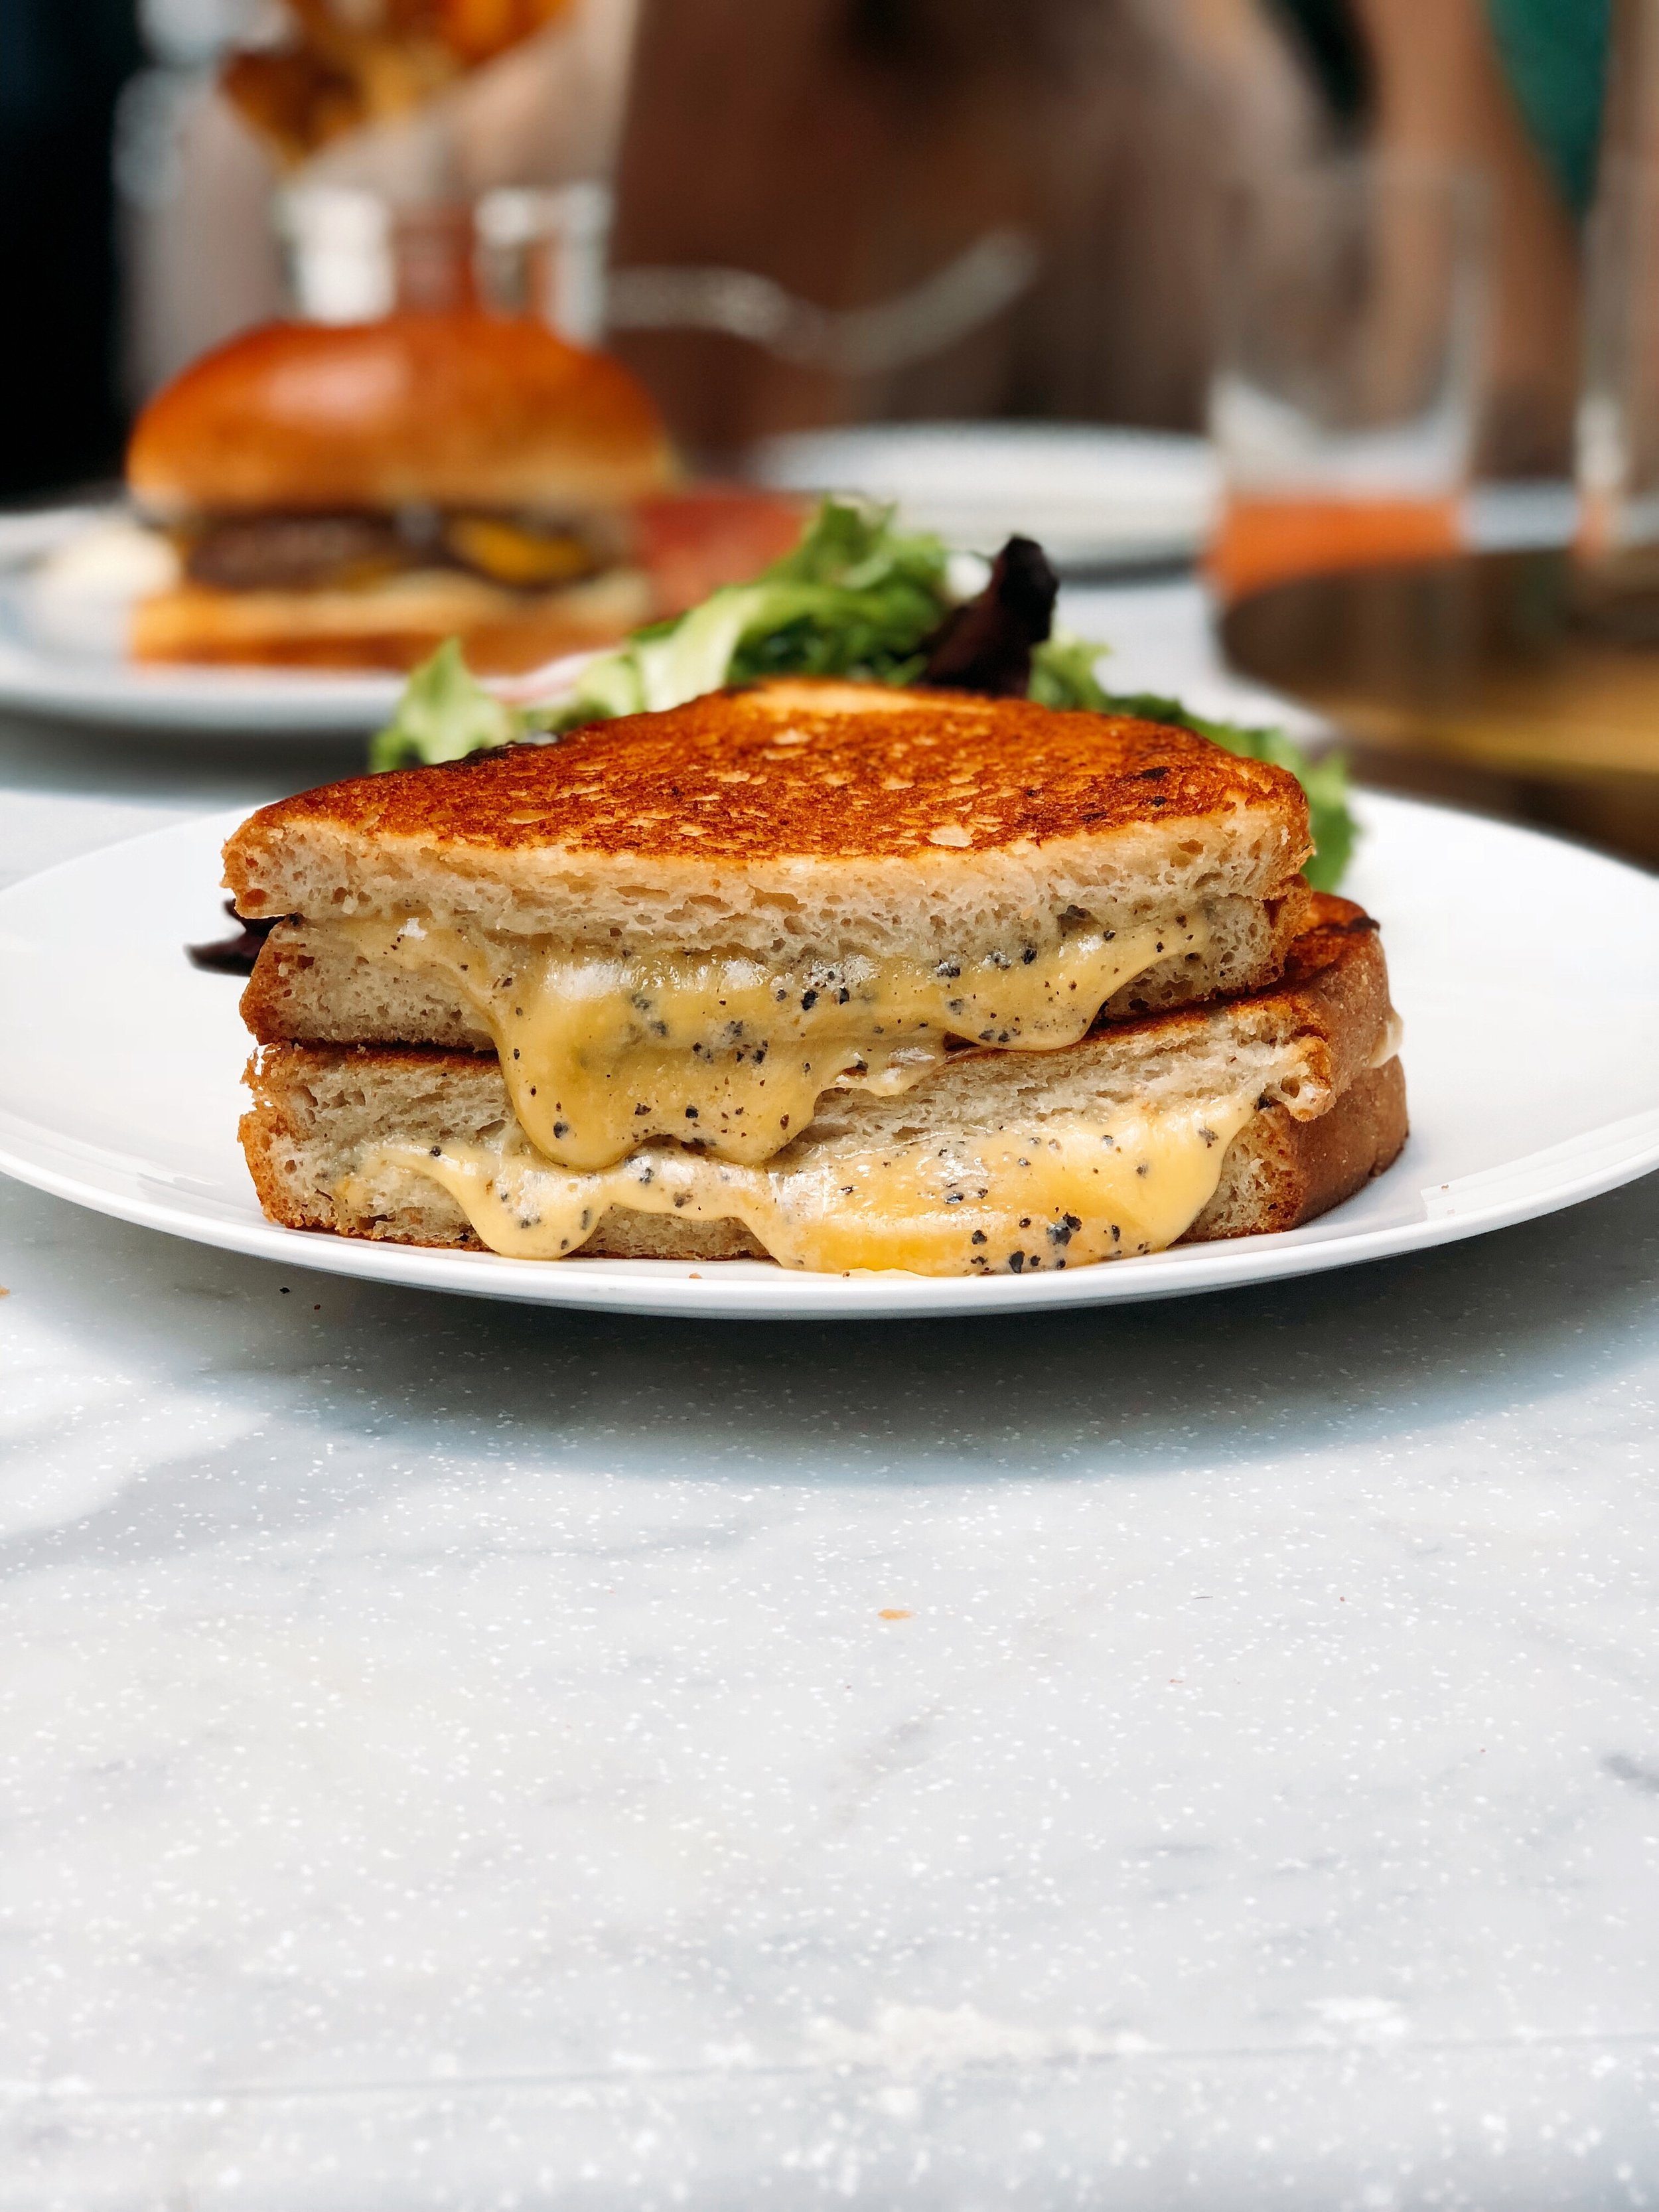 Truffled Grilled Cheese: Cheddar and Sourdough